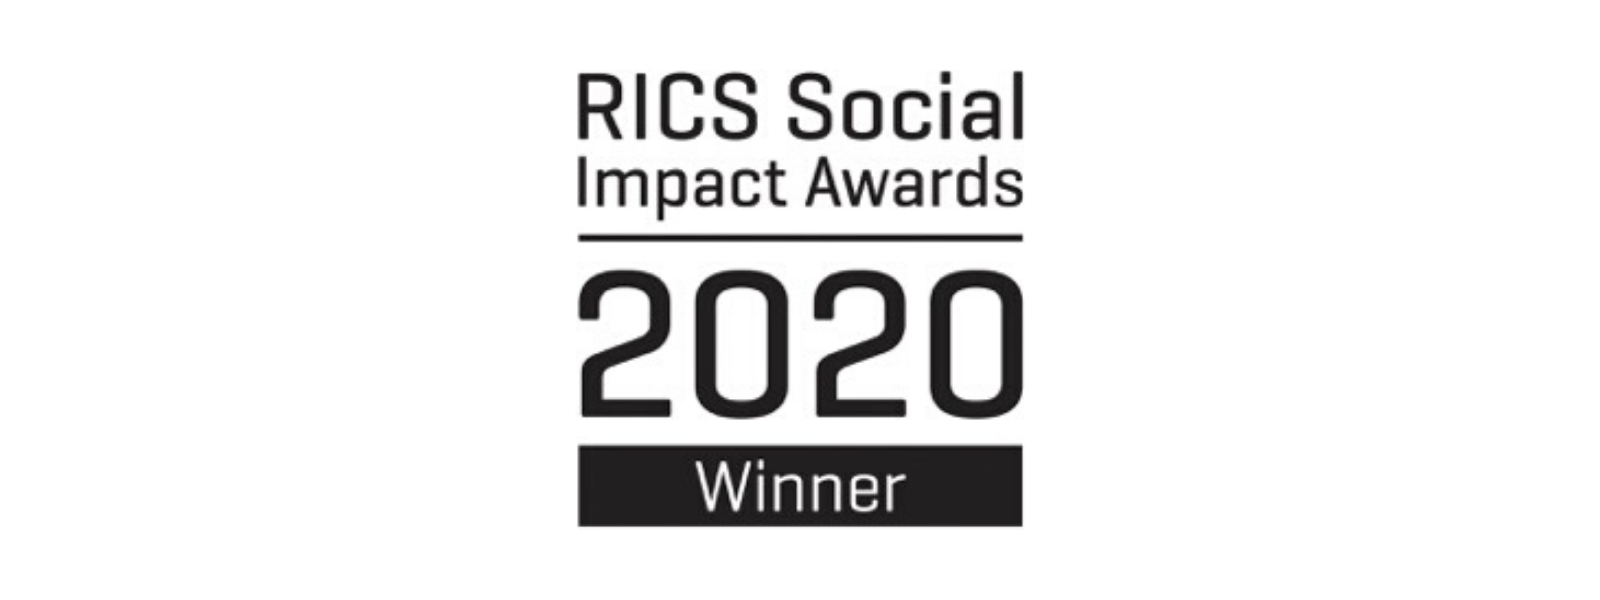 RICS Social Impact Awards